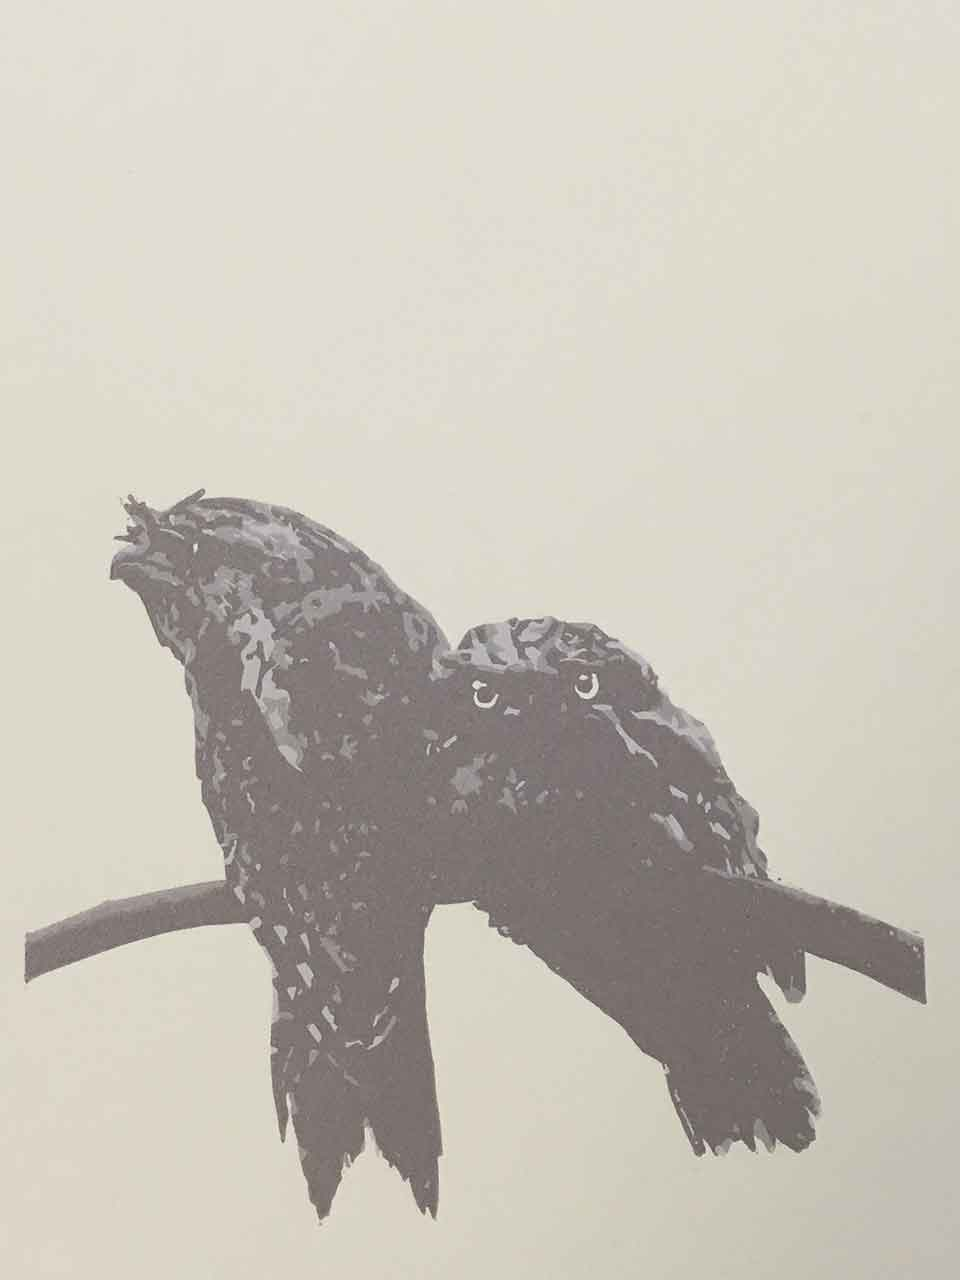 Tawny Frogmouth mother and chick reductive linoprint - 3rd colour